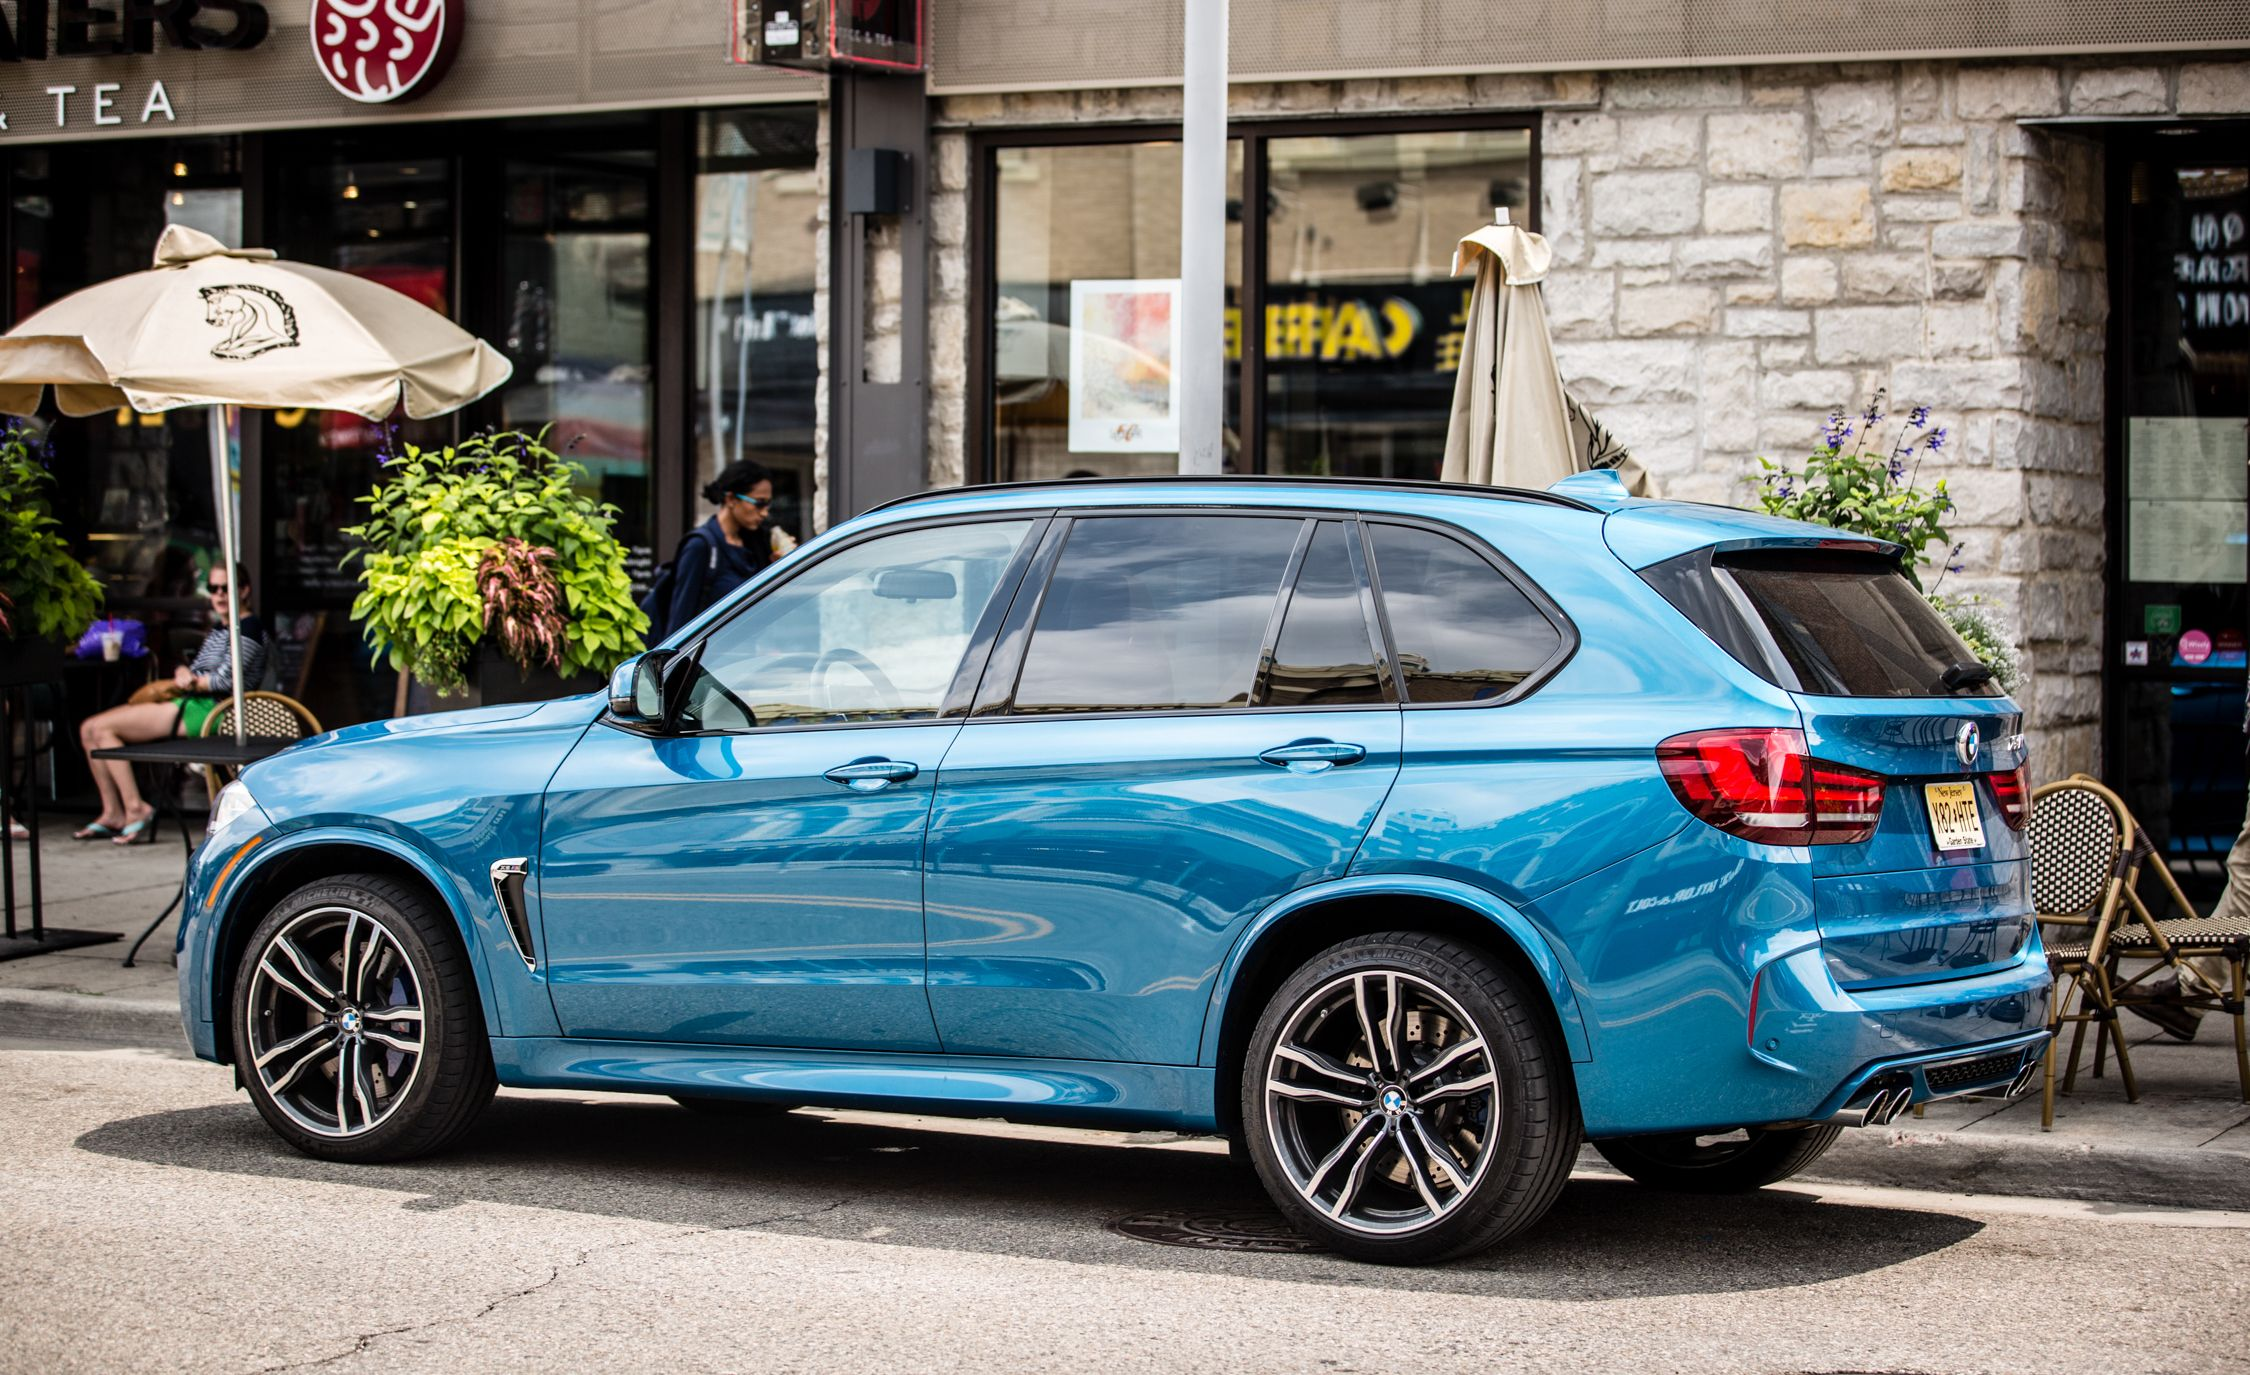 2019 bmw x5 m reviews | bmw x5 m price, photos, and specs | car and